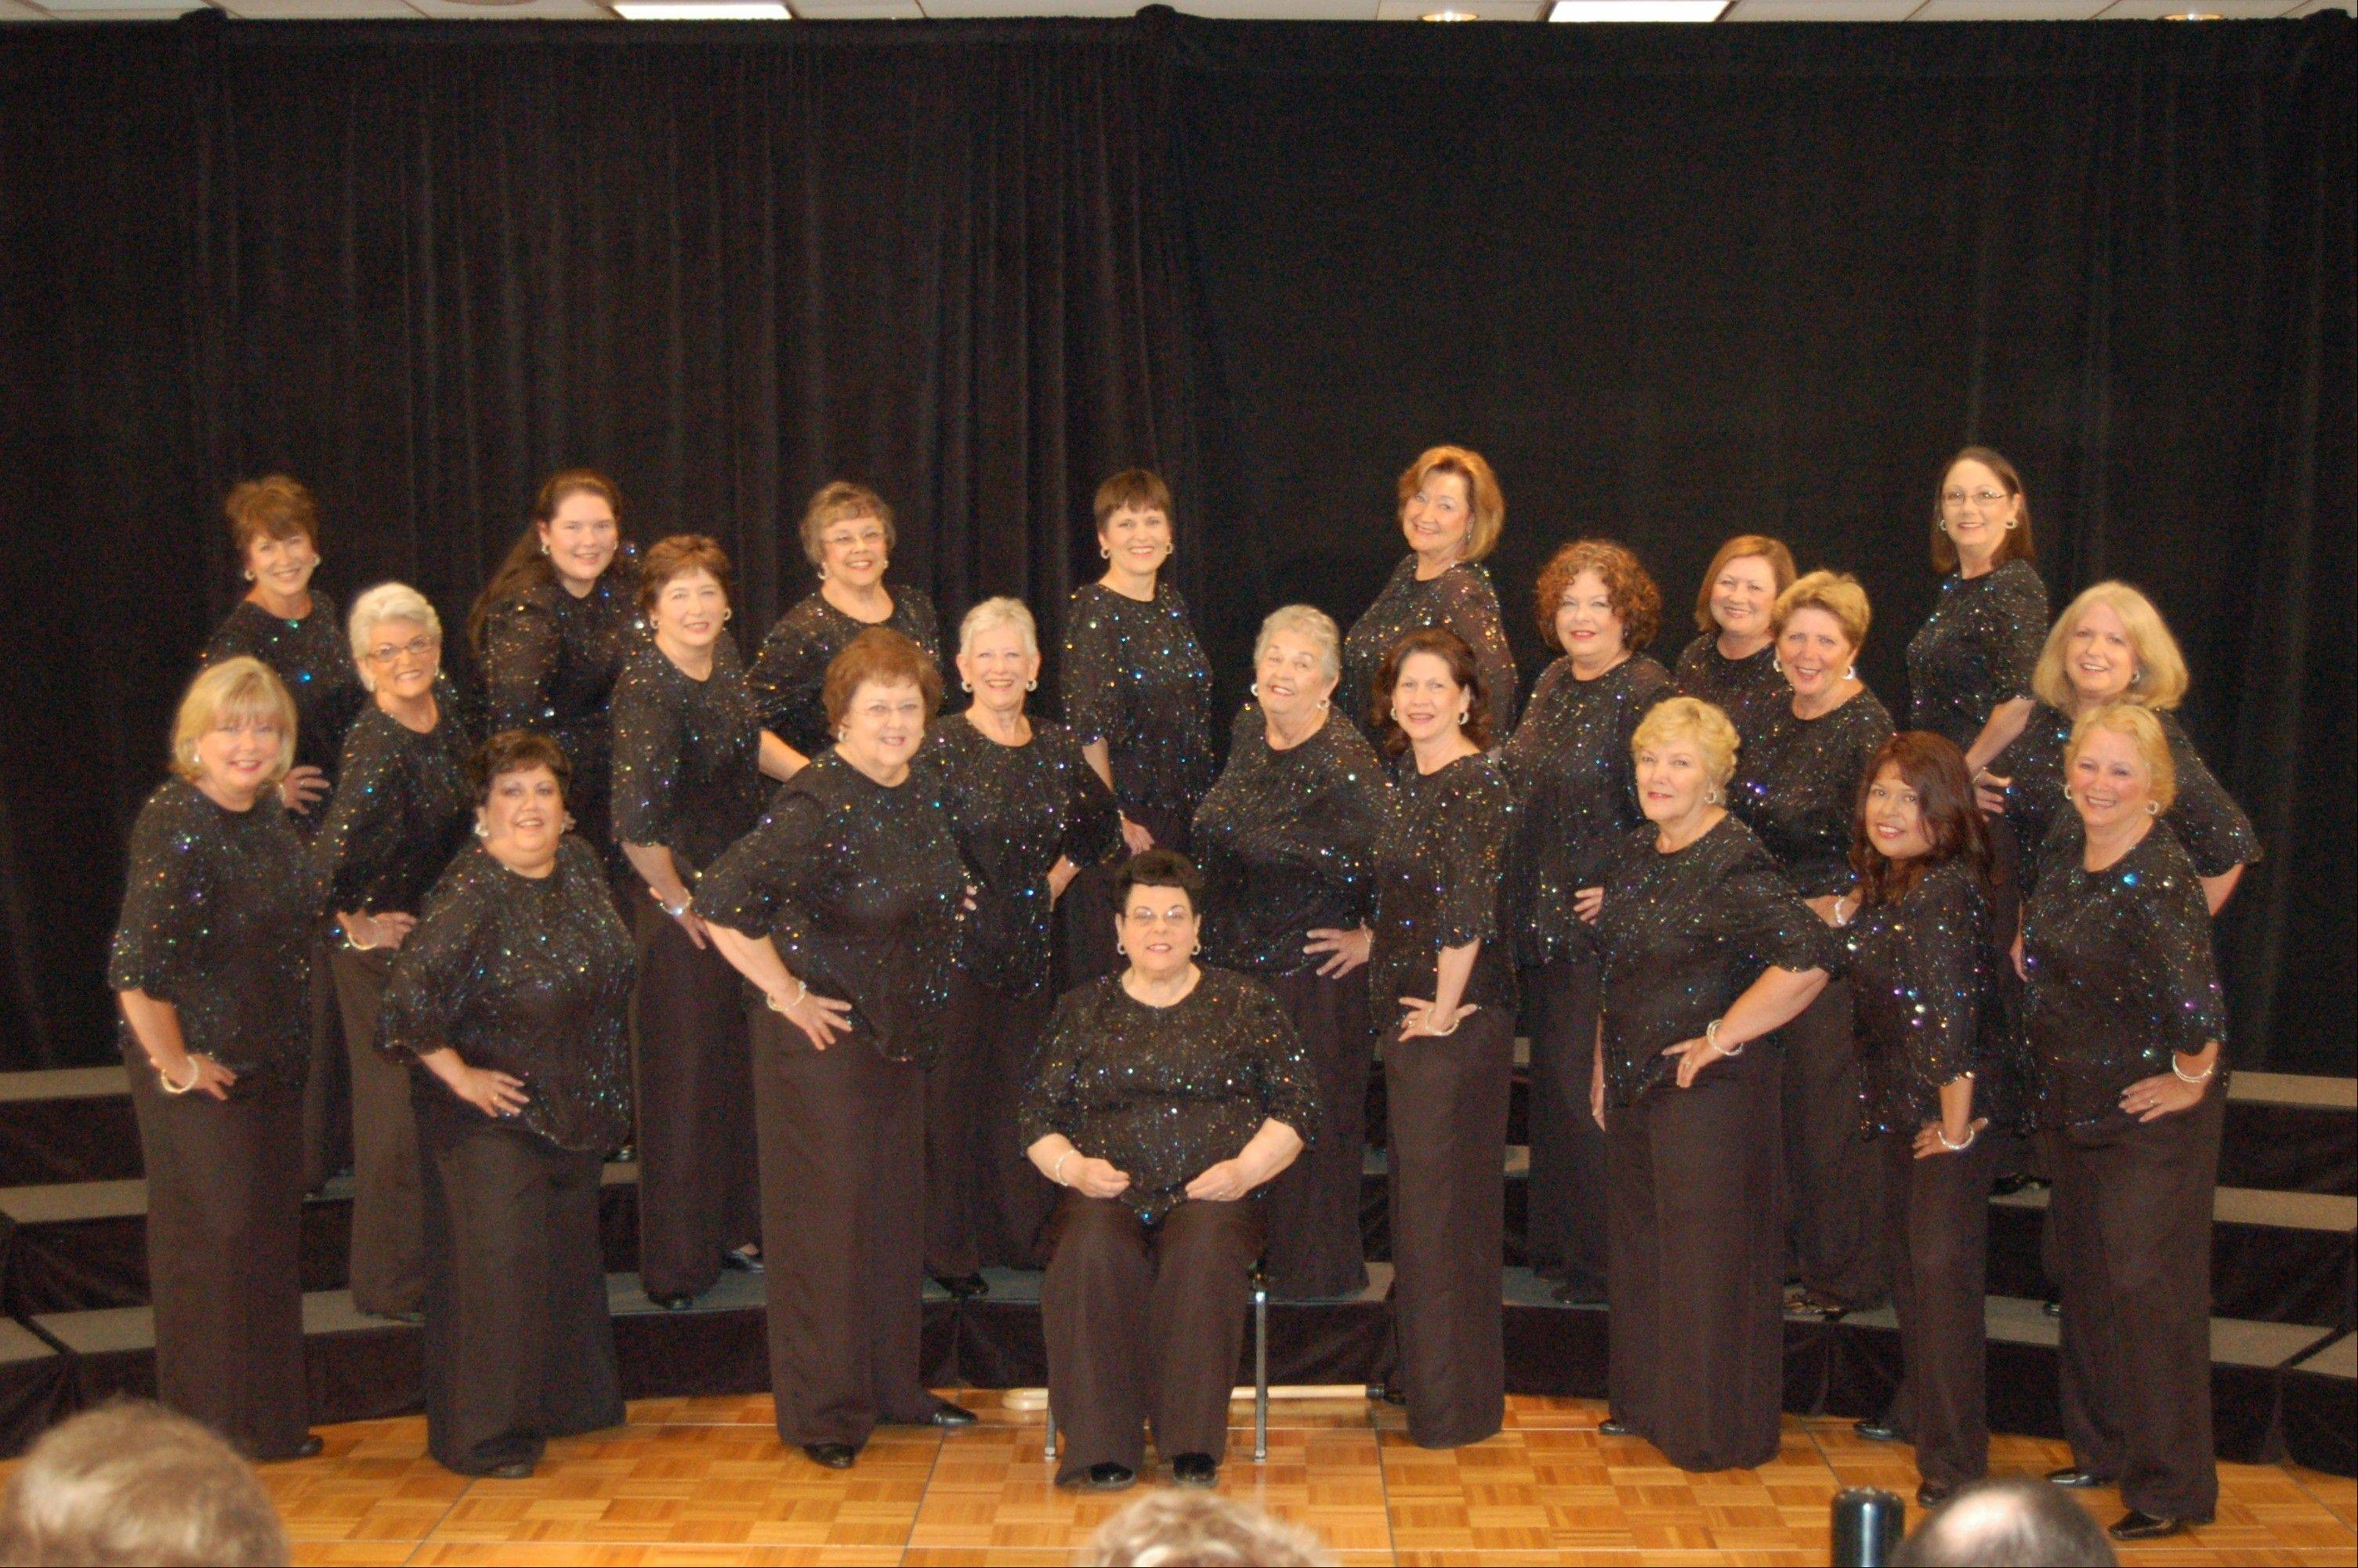 Misty River Music Makers, a women's singing group, recently brought home a first-place award from a local competition.